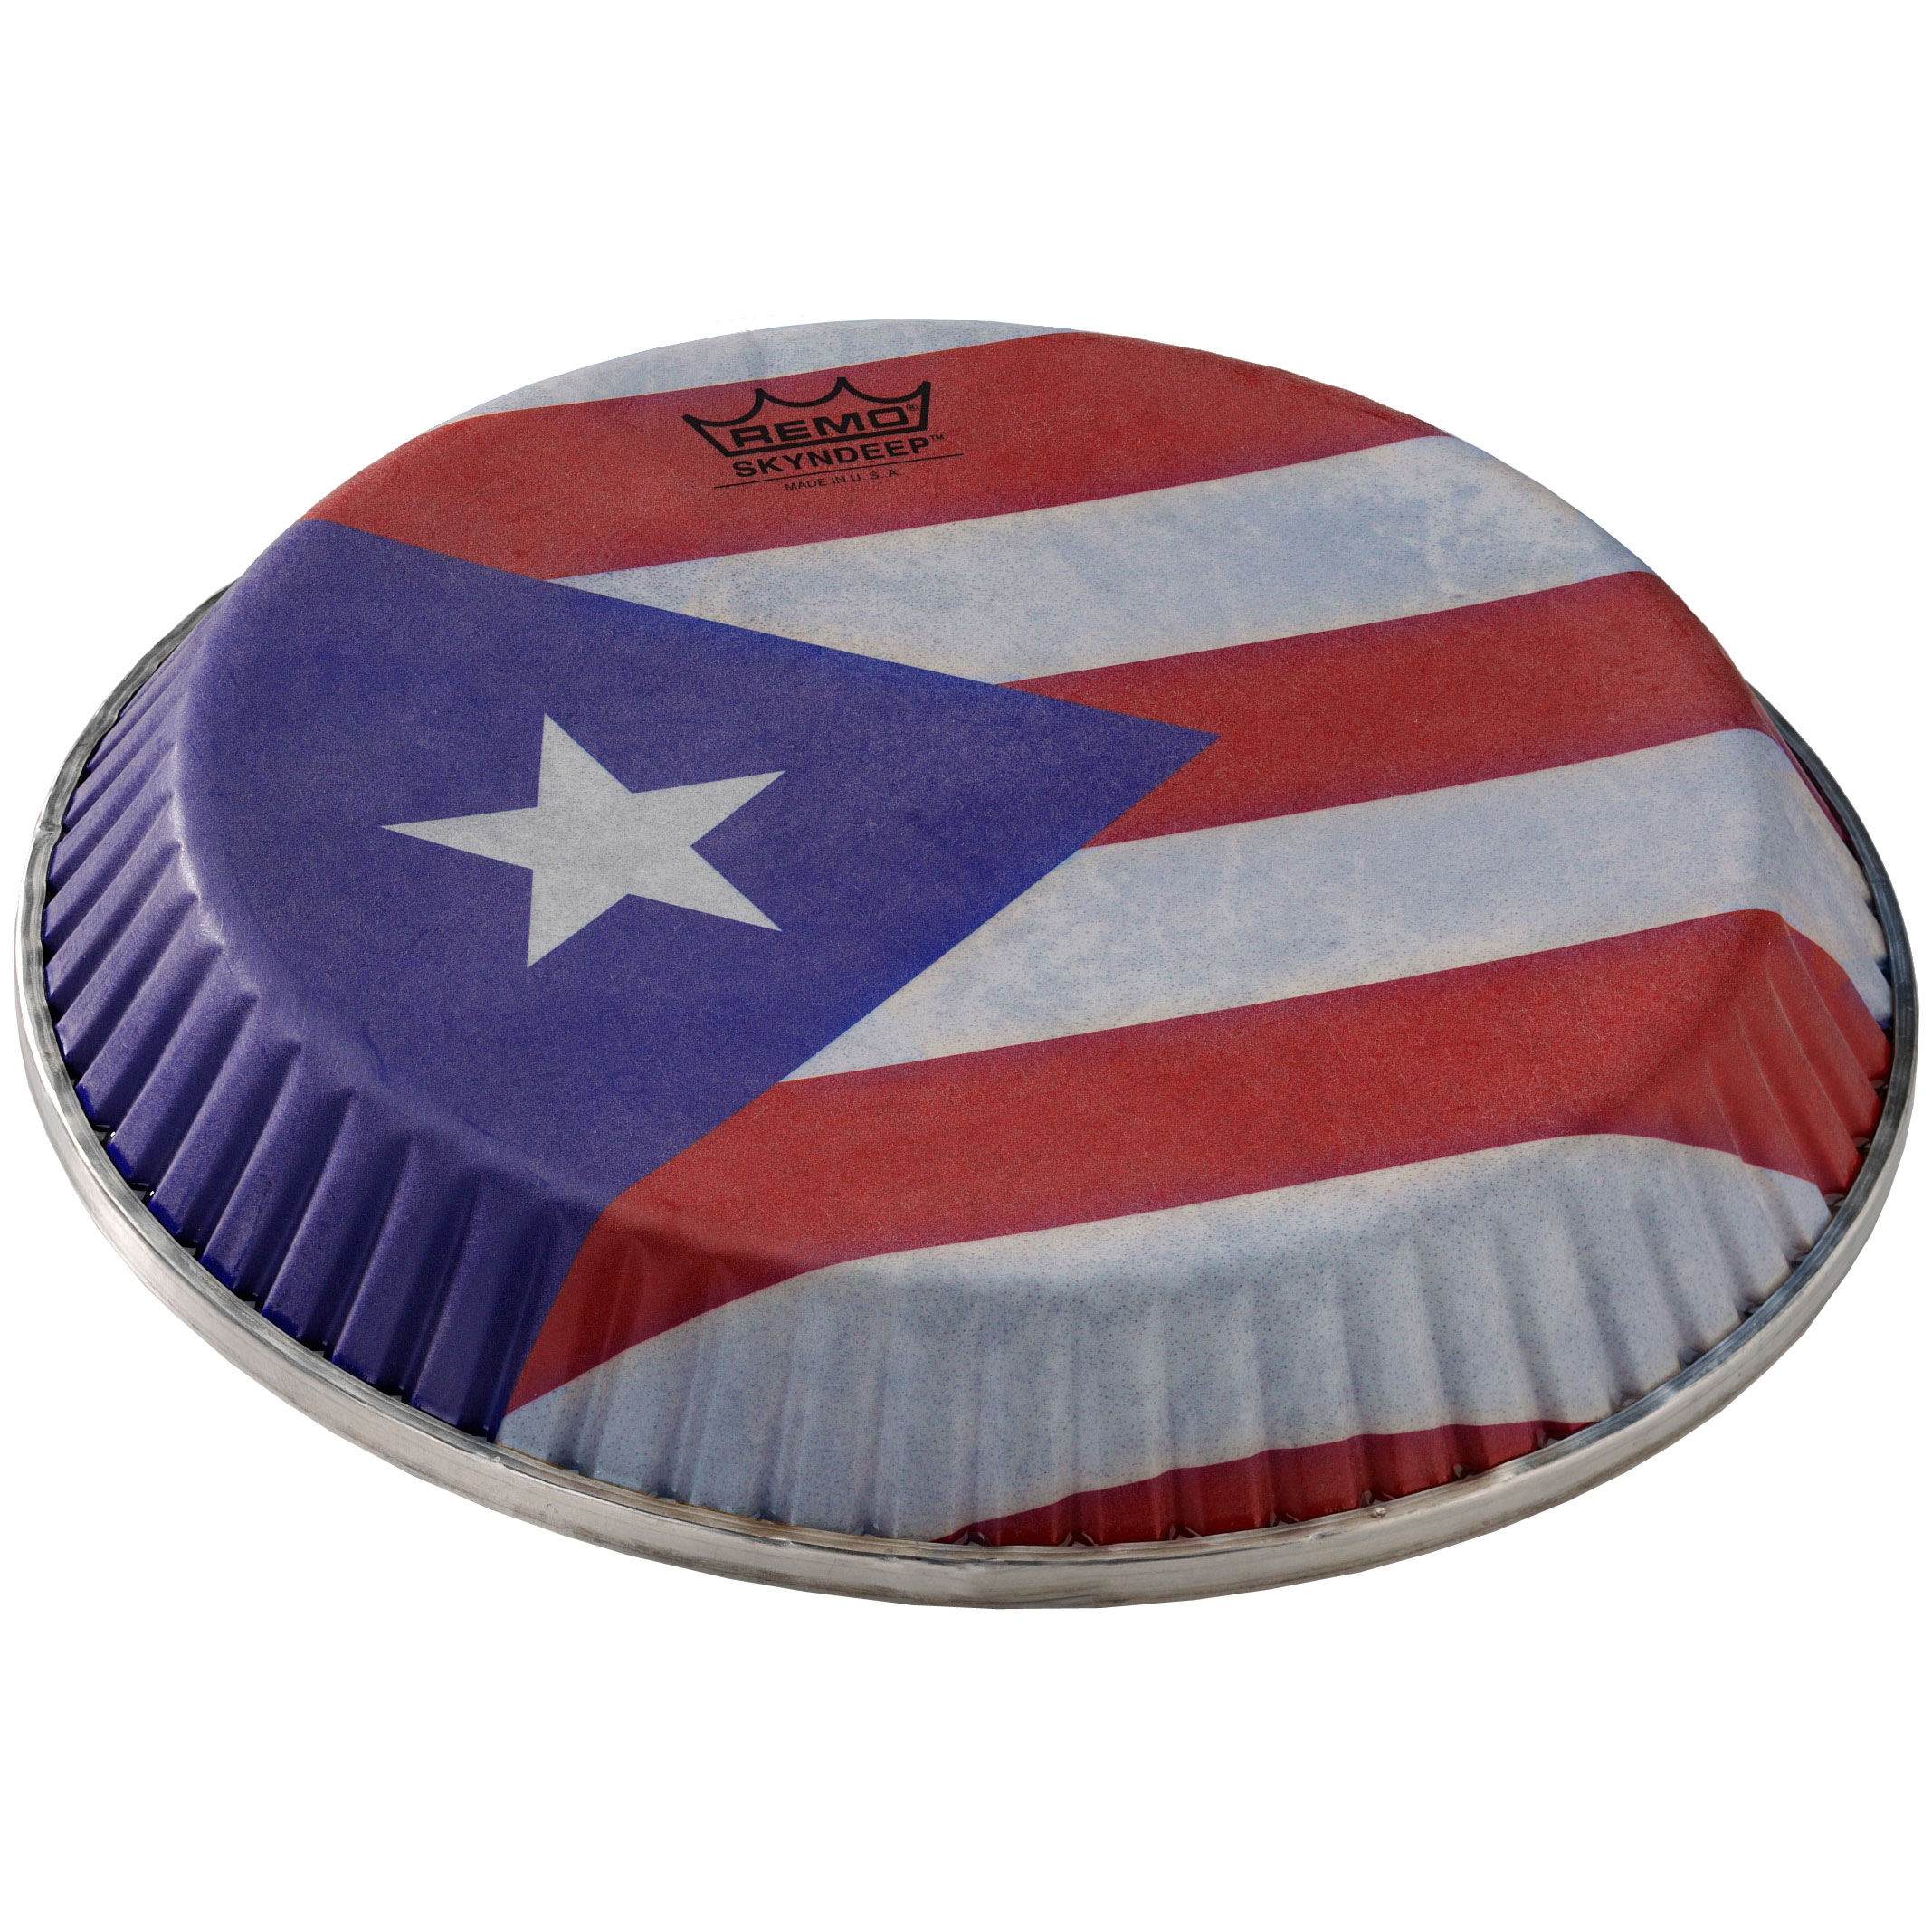 """Remo 12.5"""" Symmetry Skyndeep Conga Drum Head (D1 Collar) with Puerto Rican Flag Graphic"""